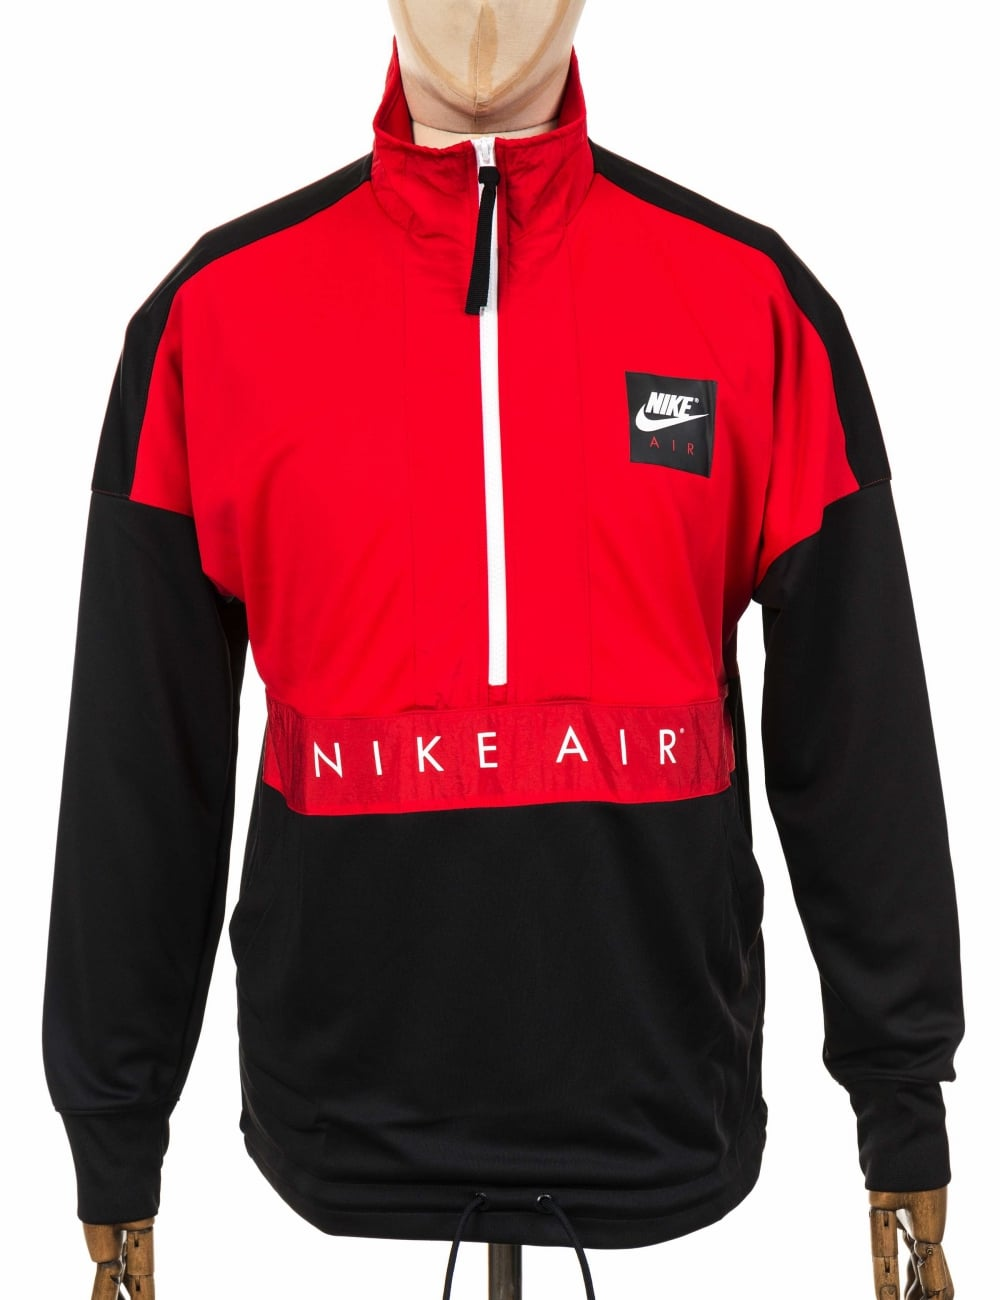 1629d7c06 Nike L/S Half Zip Top - University Red/Black - Clothing from Fat ...